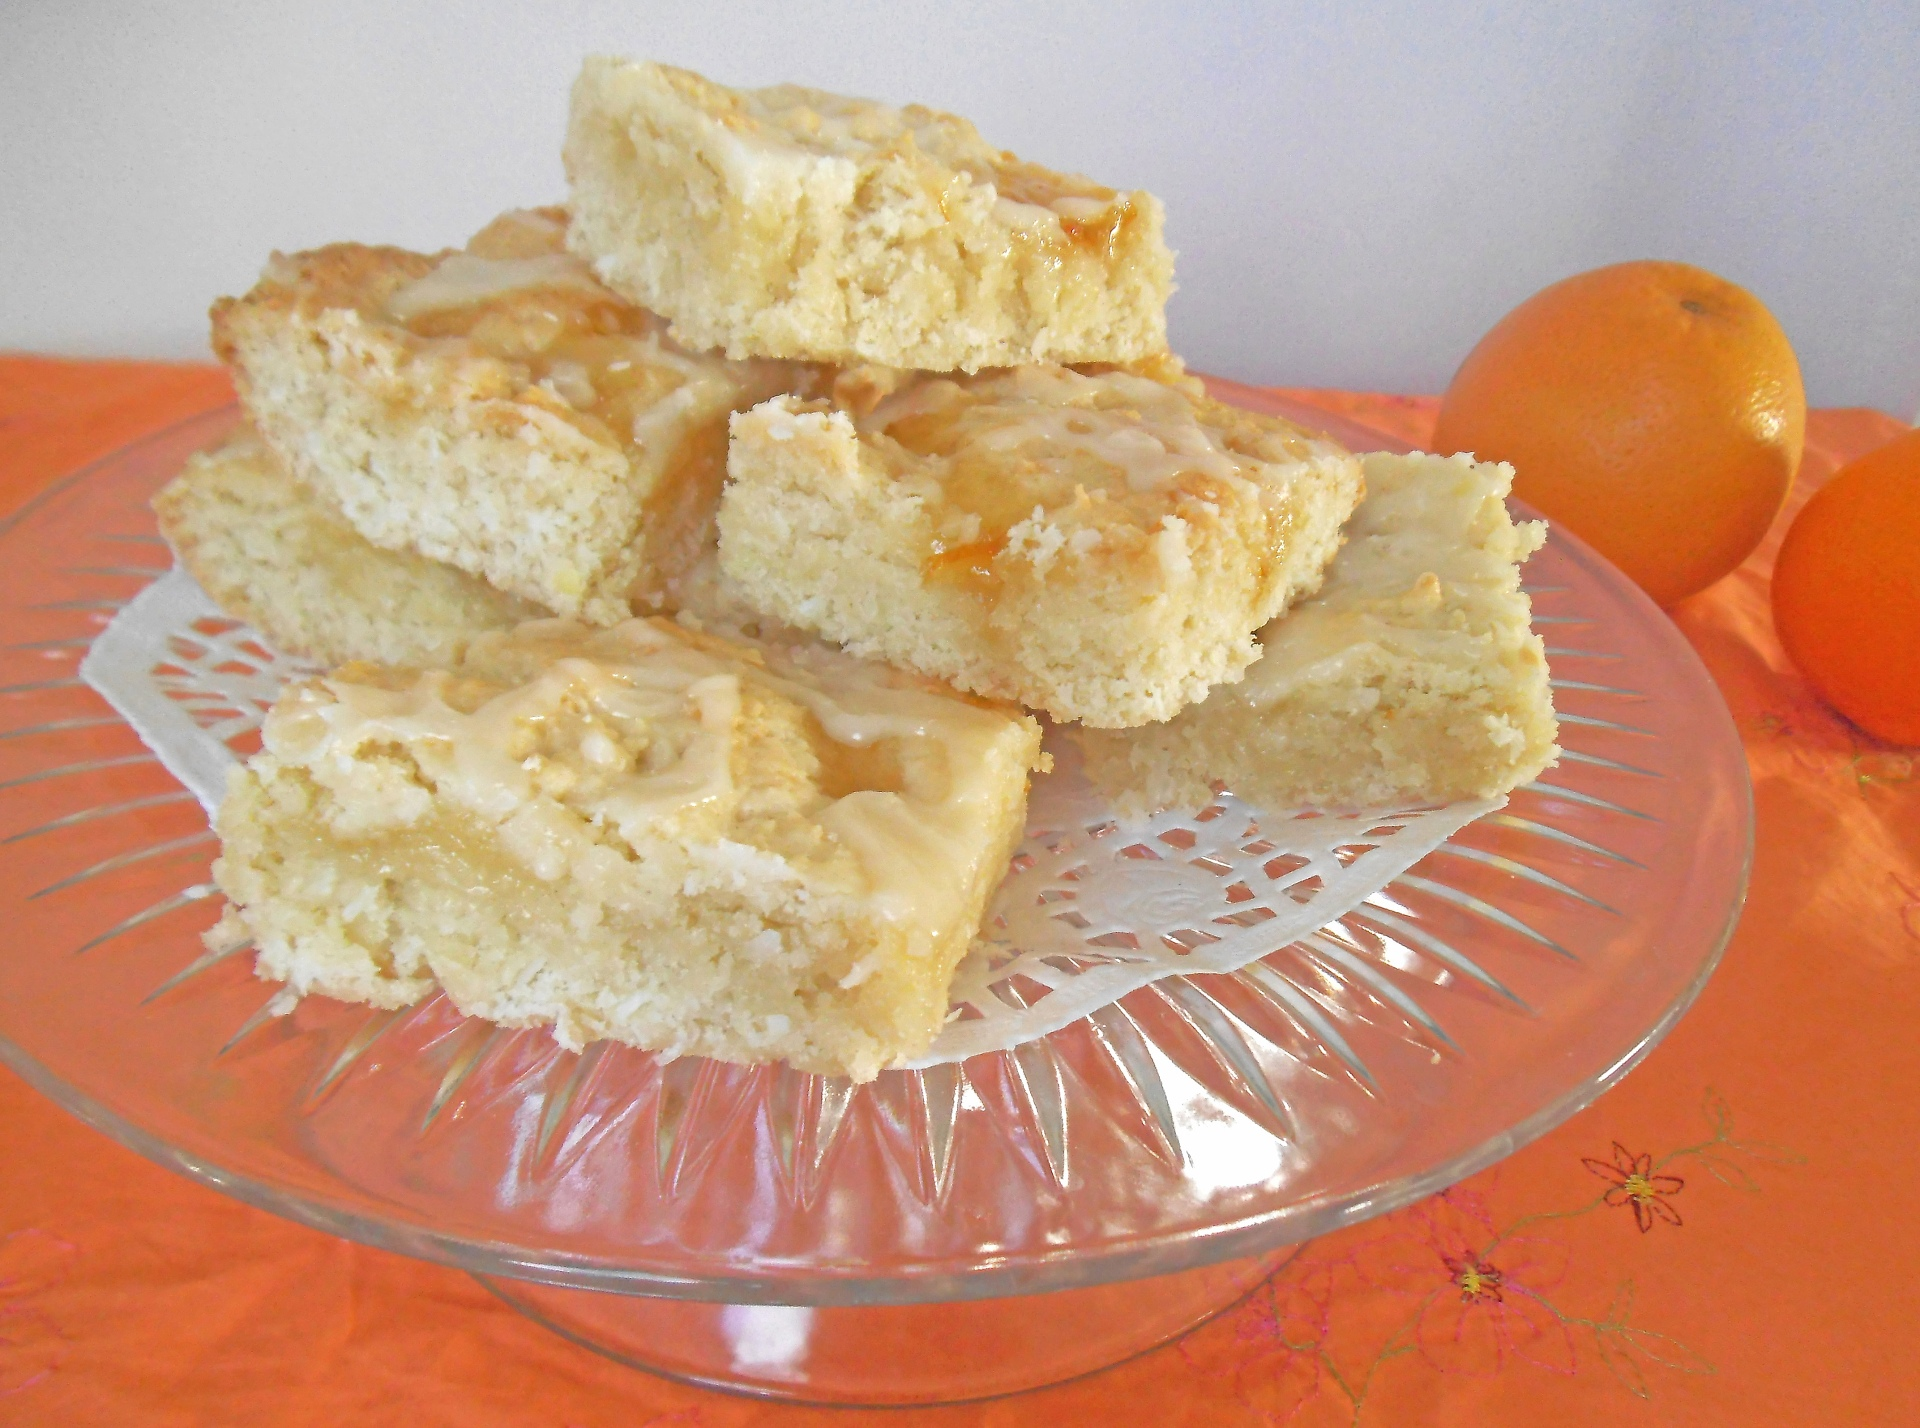 Marmalade-swirled lemon cookie squares on a glass serving platter